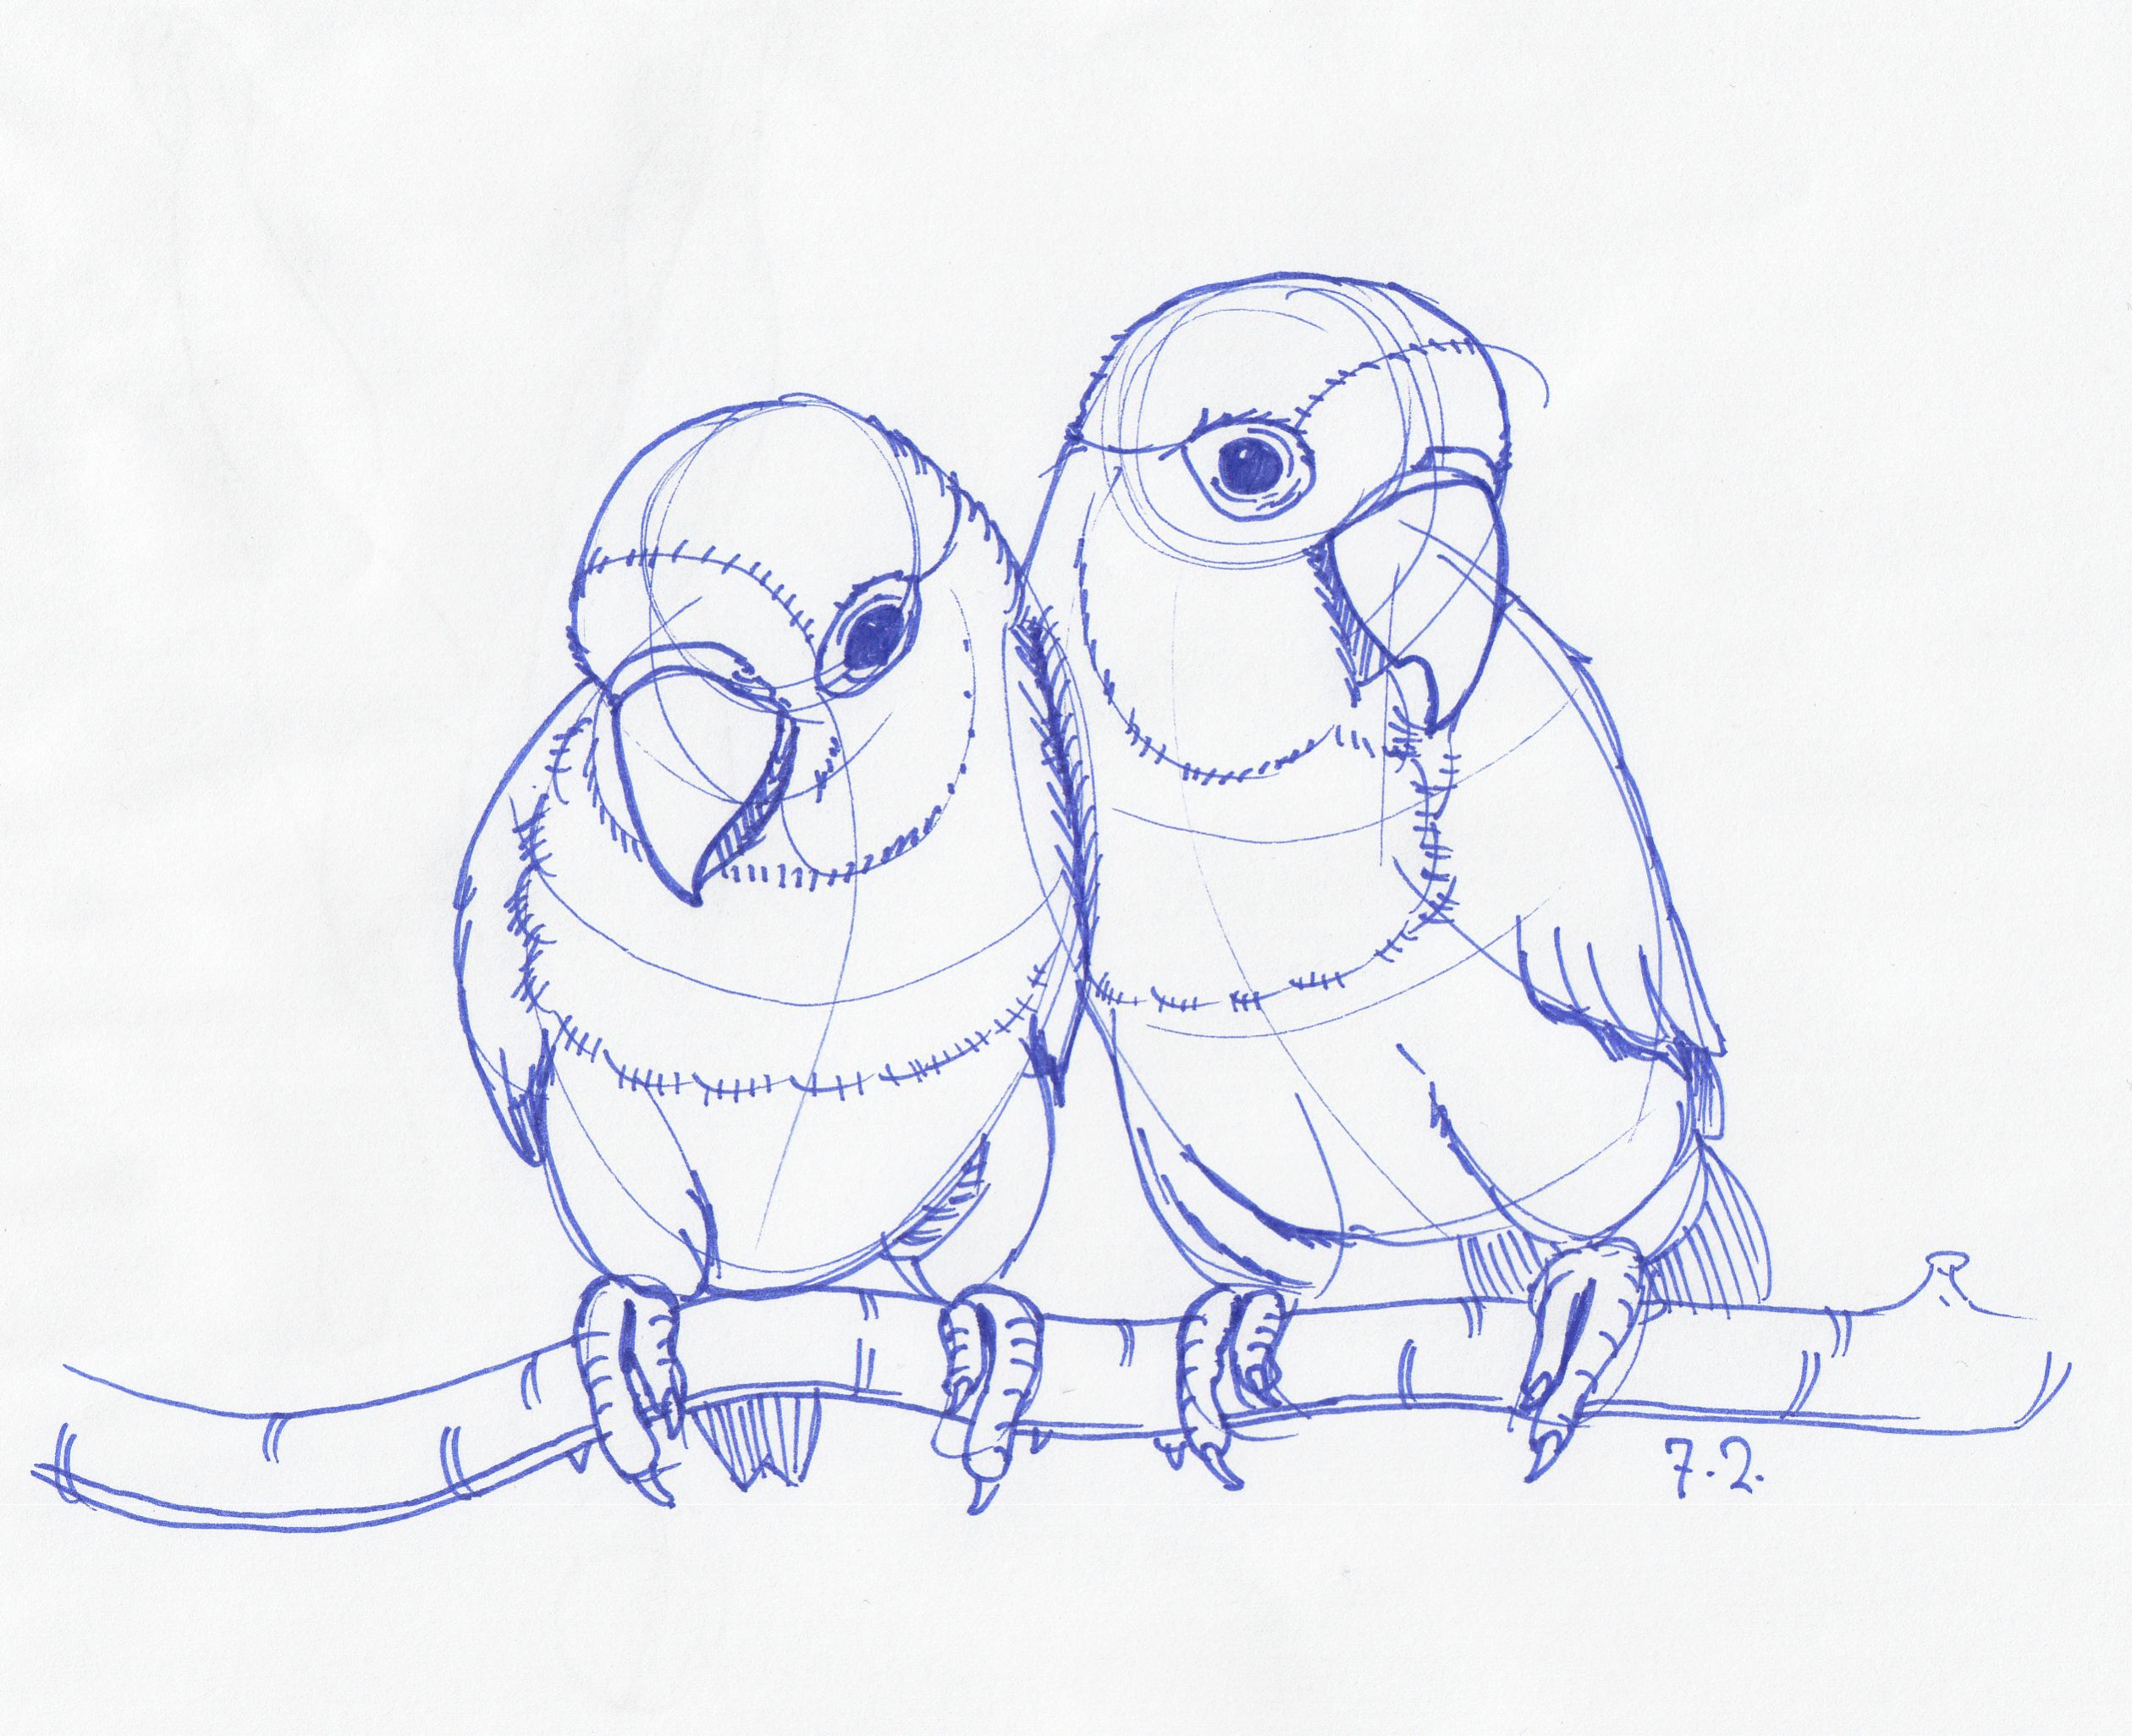 2519x2051 Love Birds Sketch Image February 7th